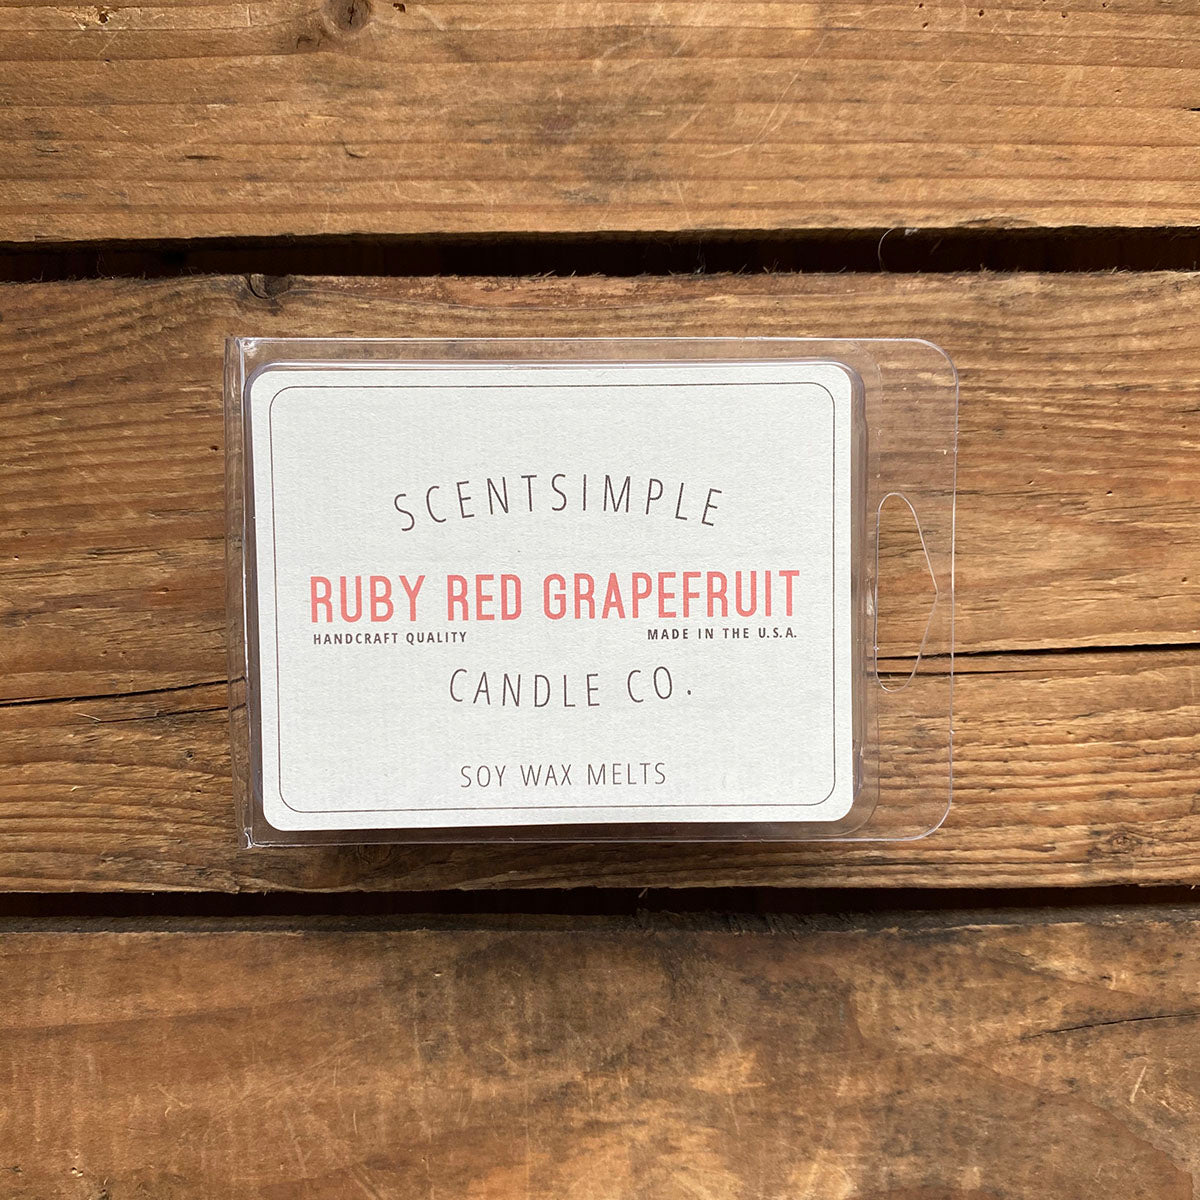 Ruby Red Grapefruit Scented Soy Wax Melts